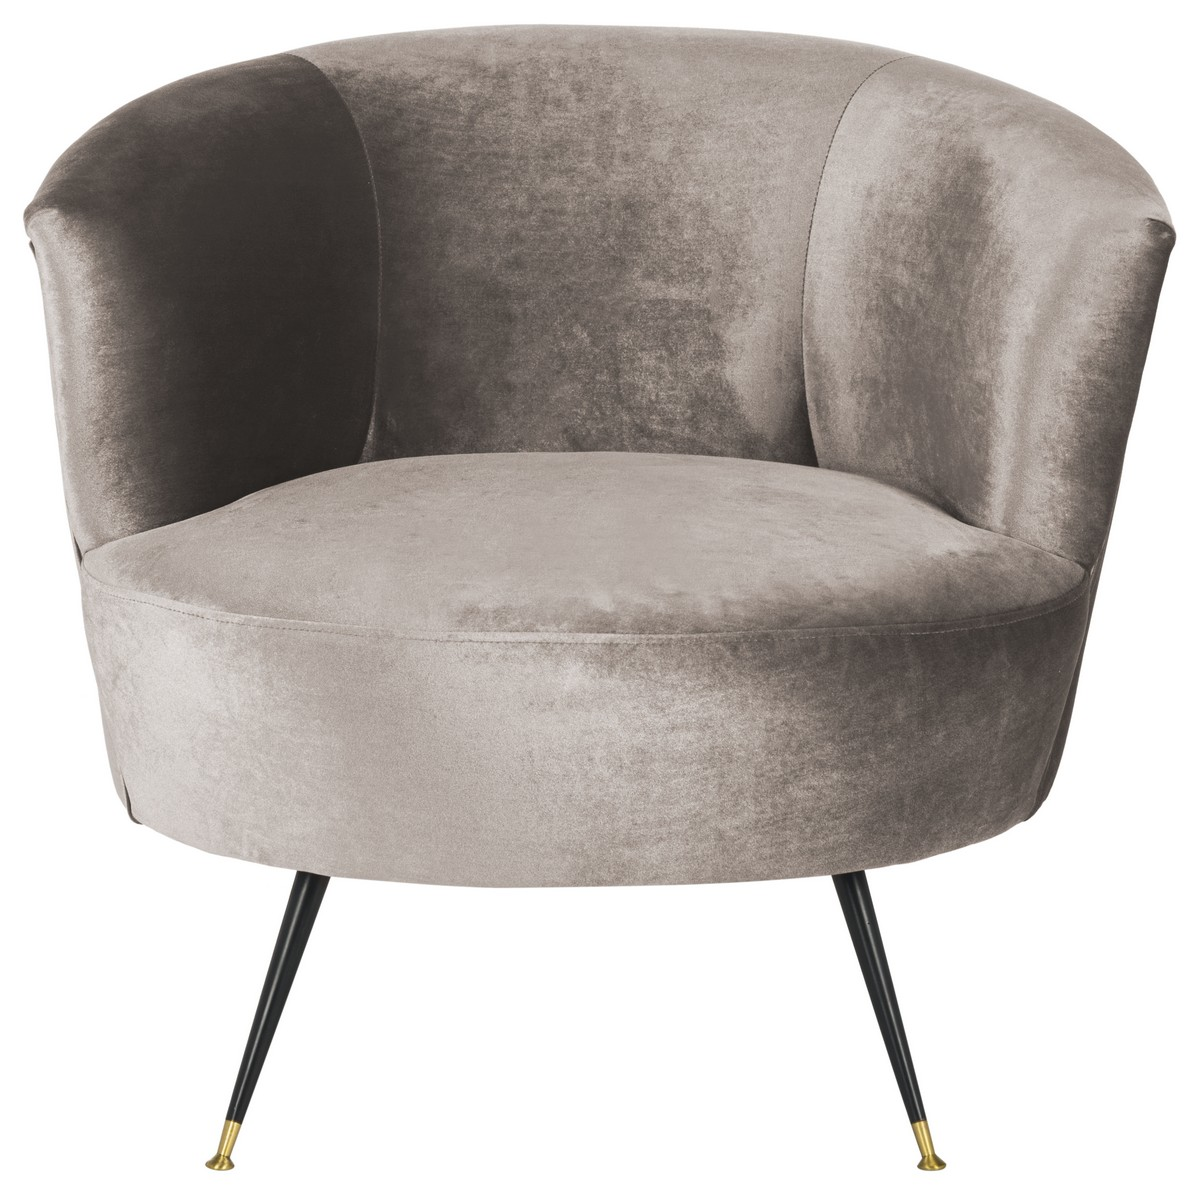 Fox6257a Accent Chairs Furniture By Safavieh